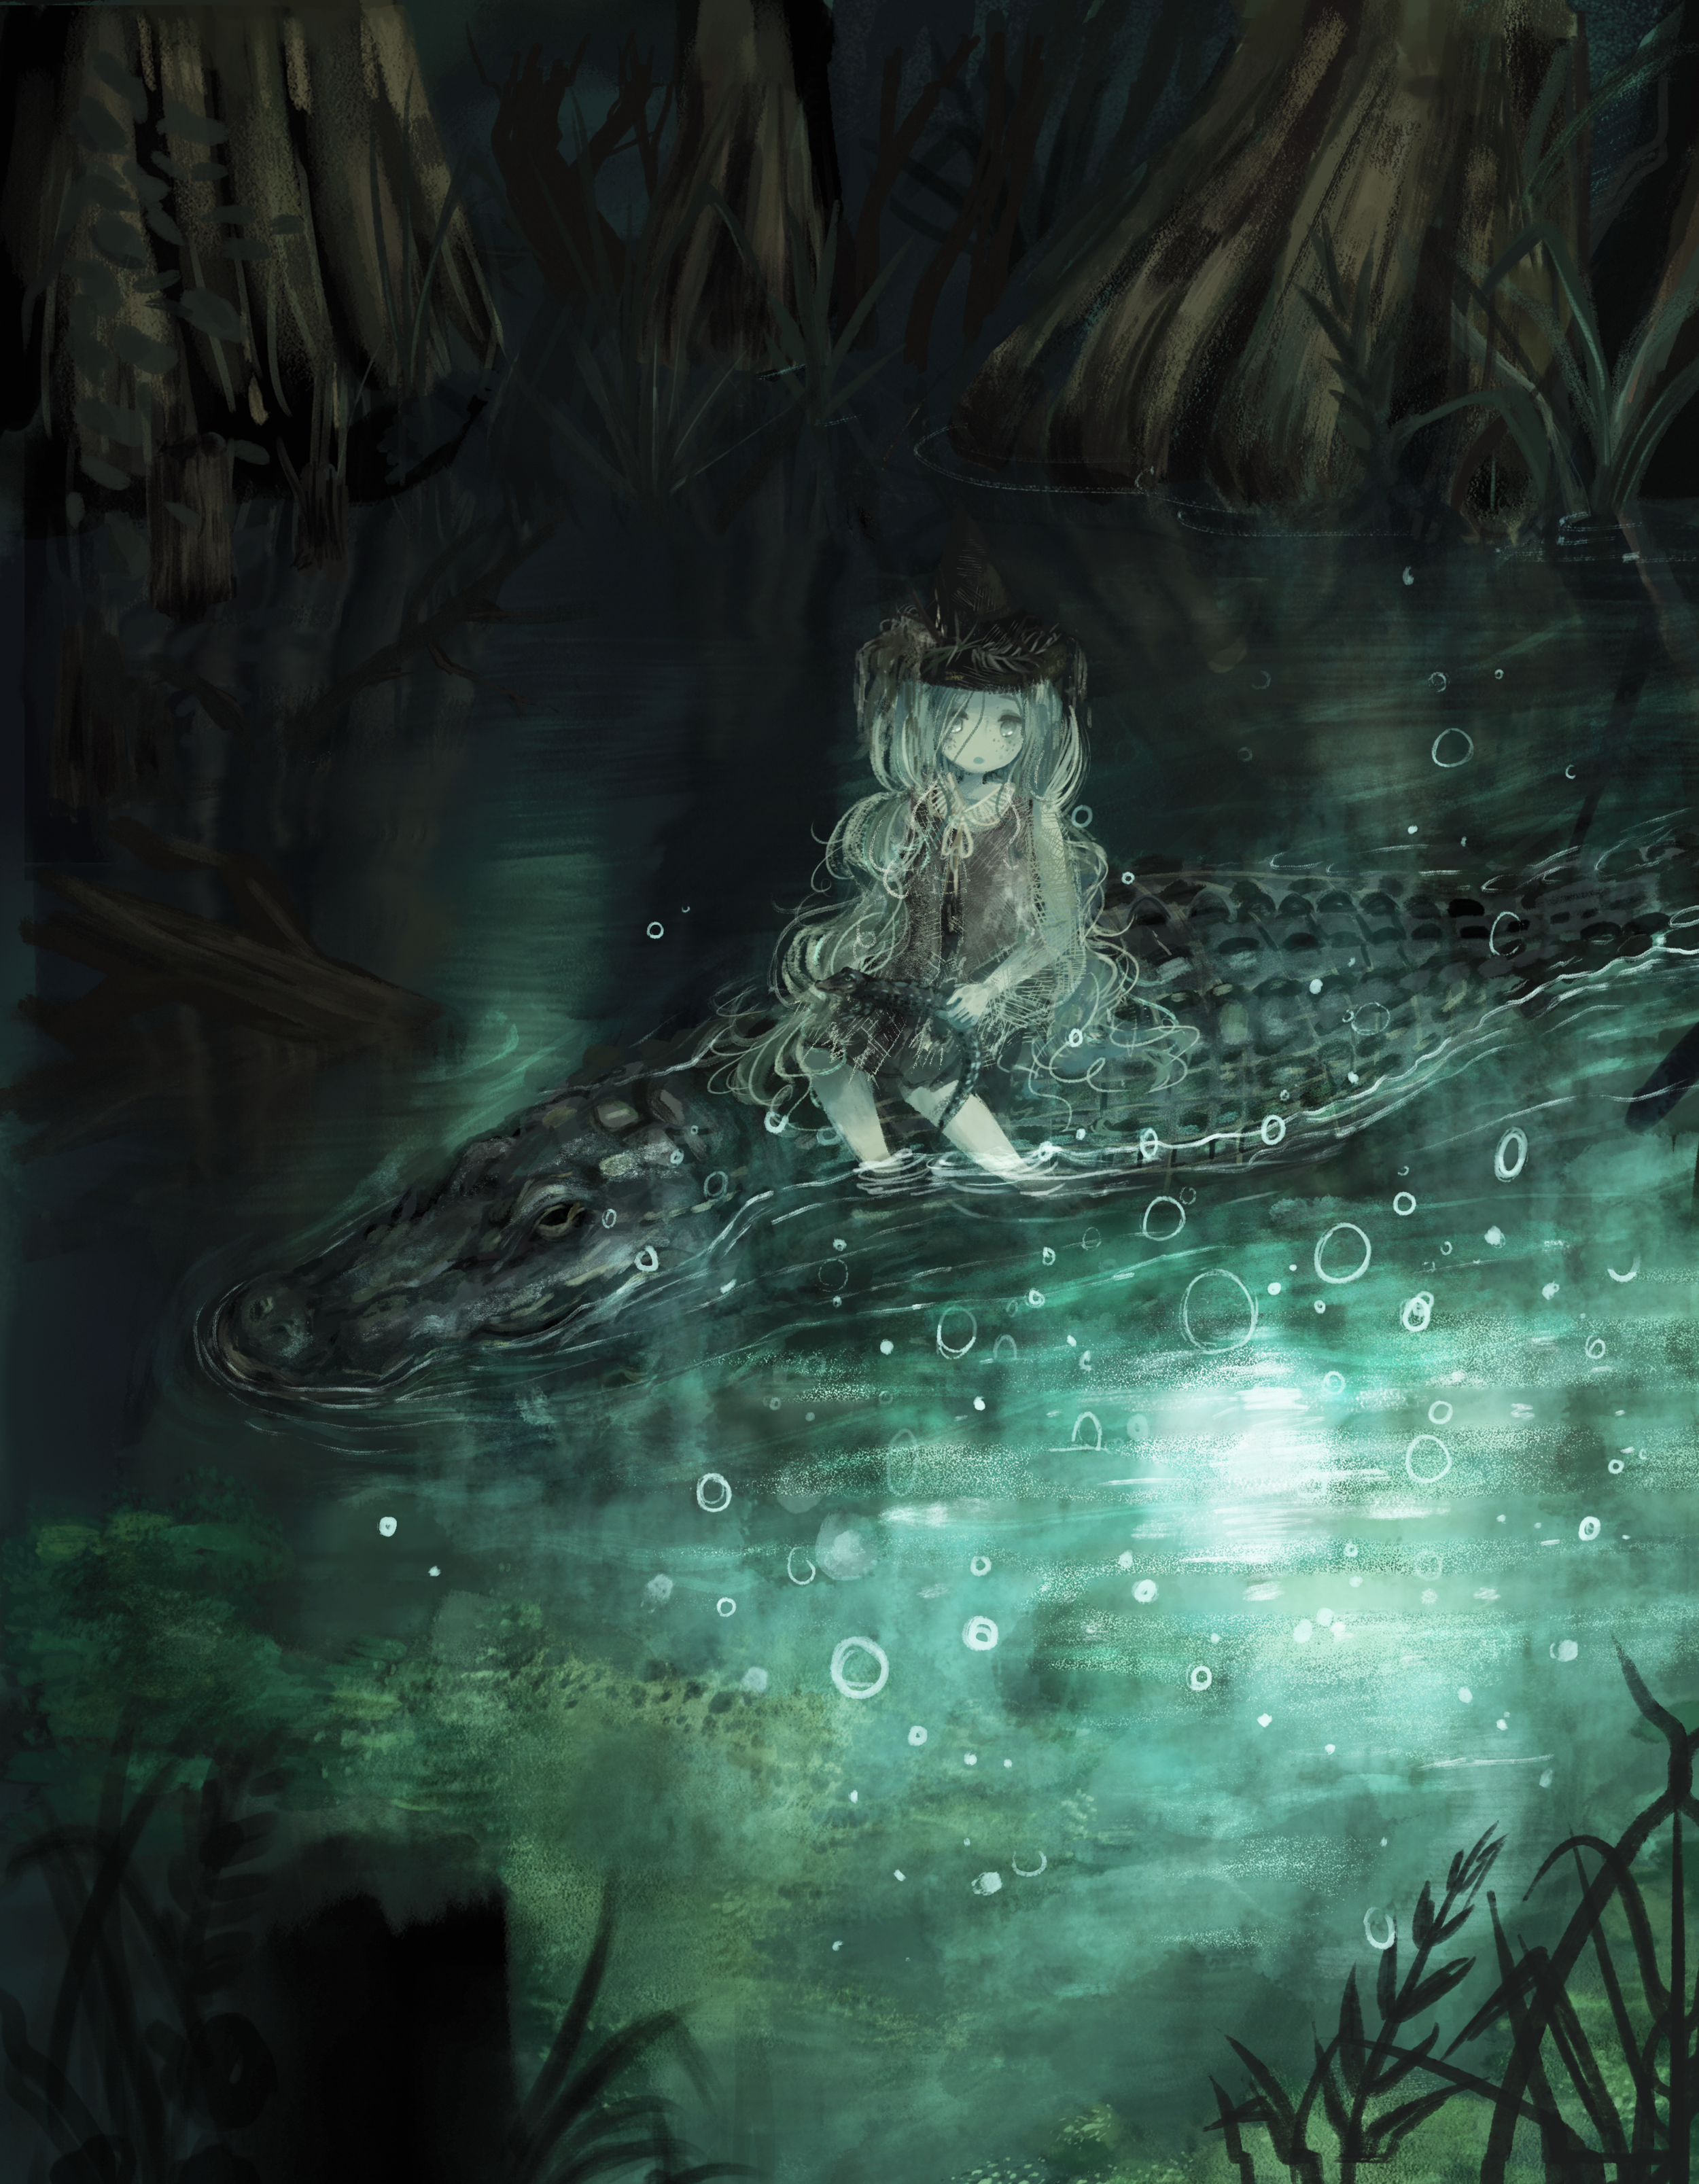 Swamp Witch  Original Illustration for Emerging Artists zine,  The Witching Hour,  2018